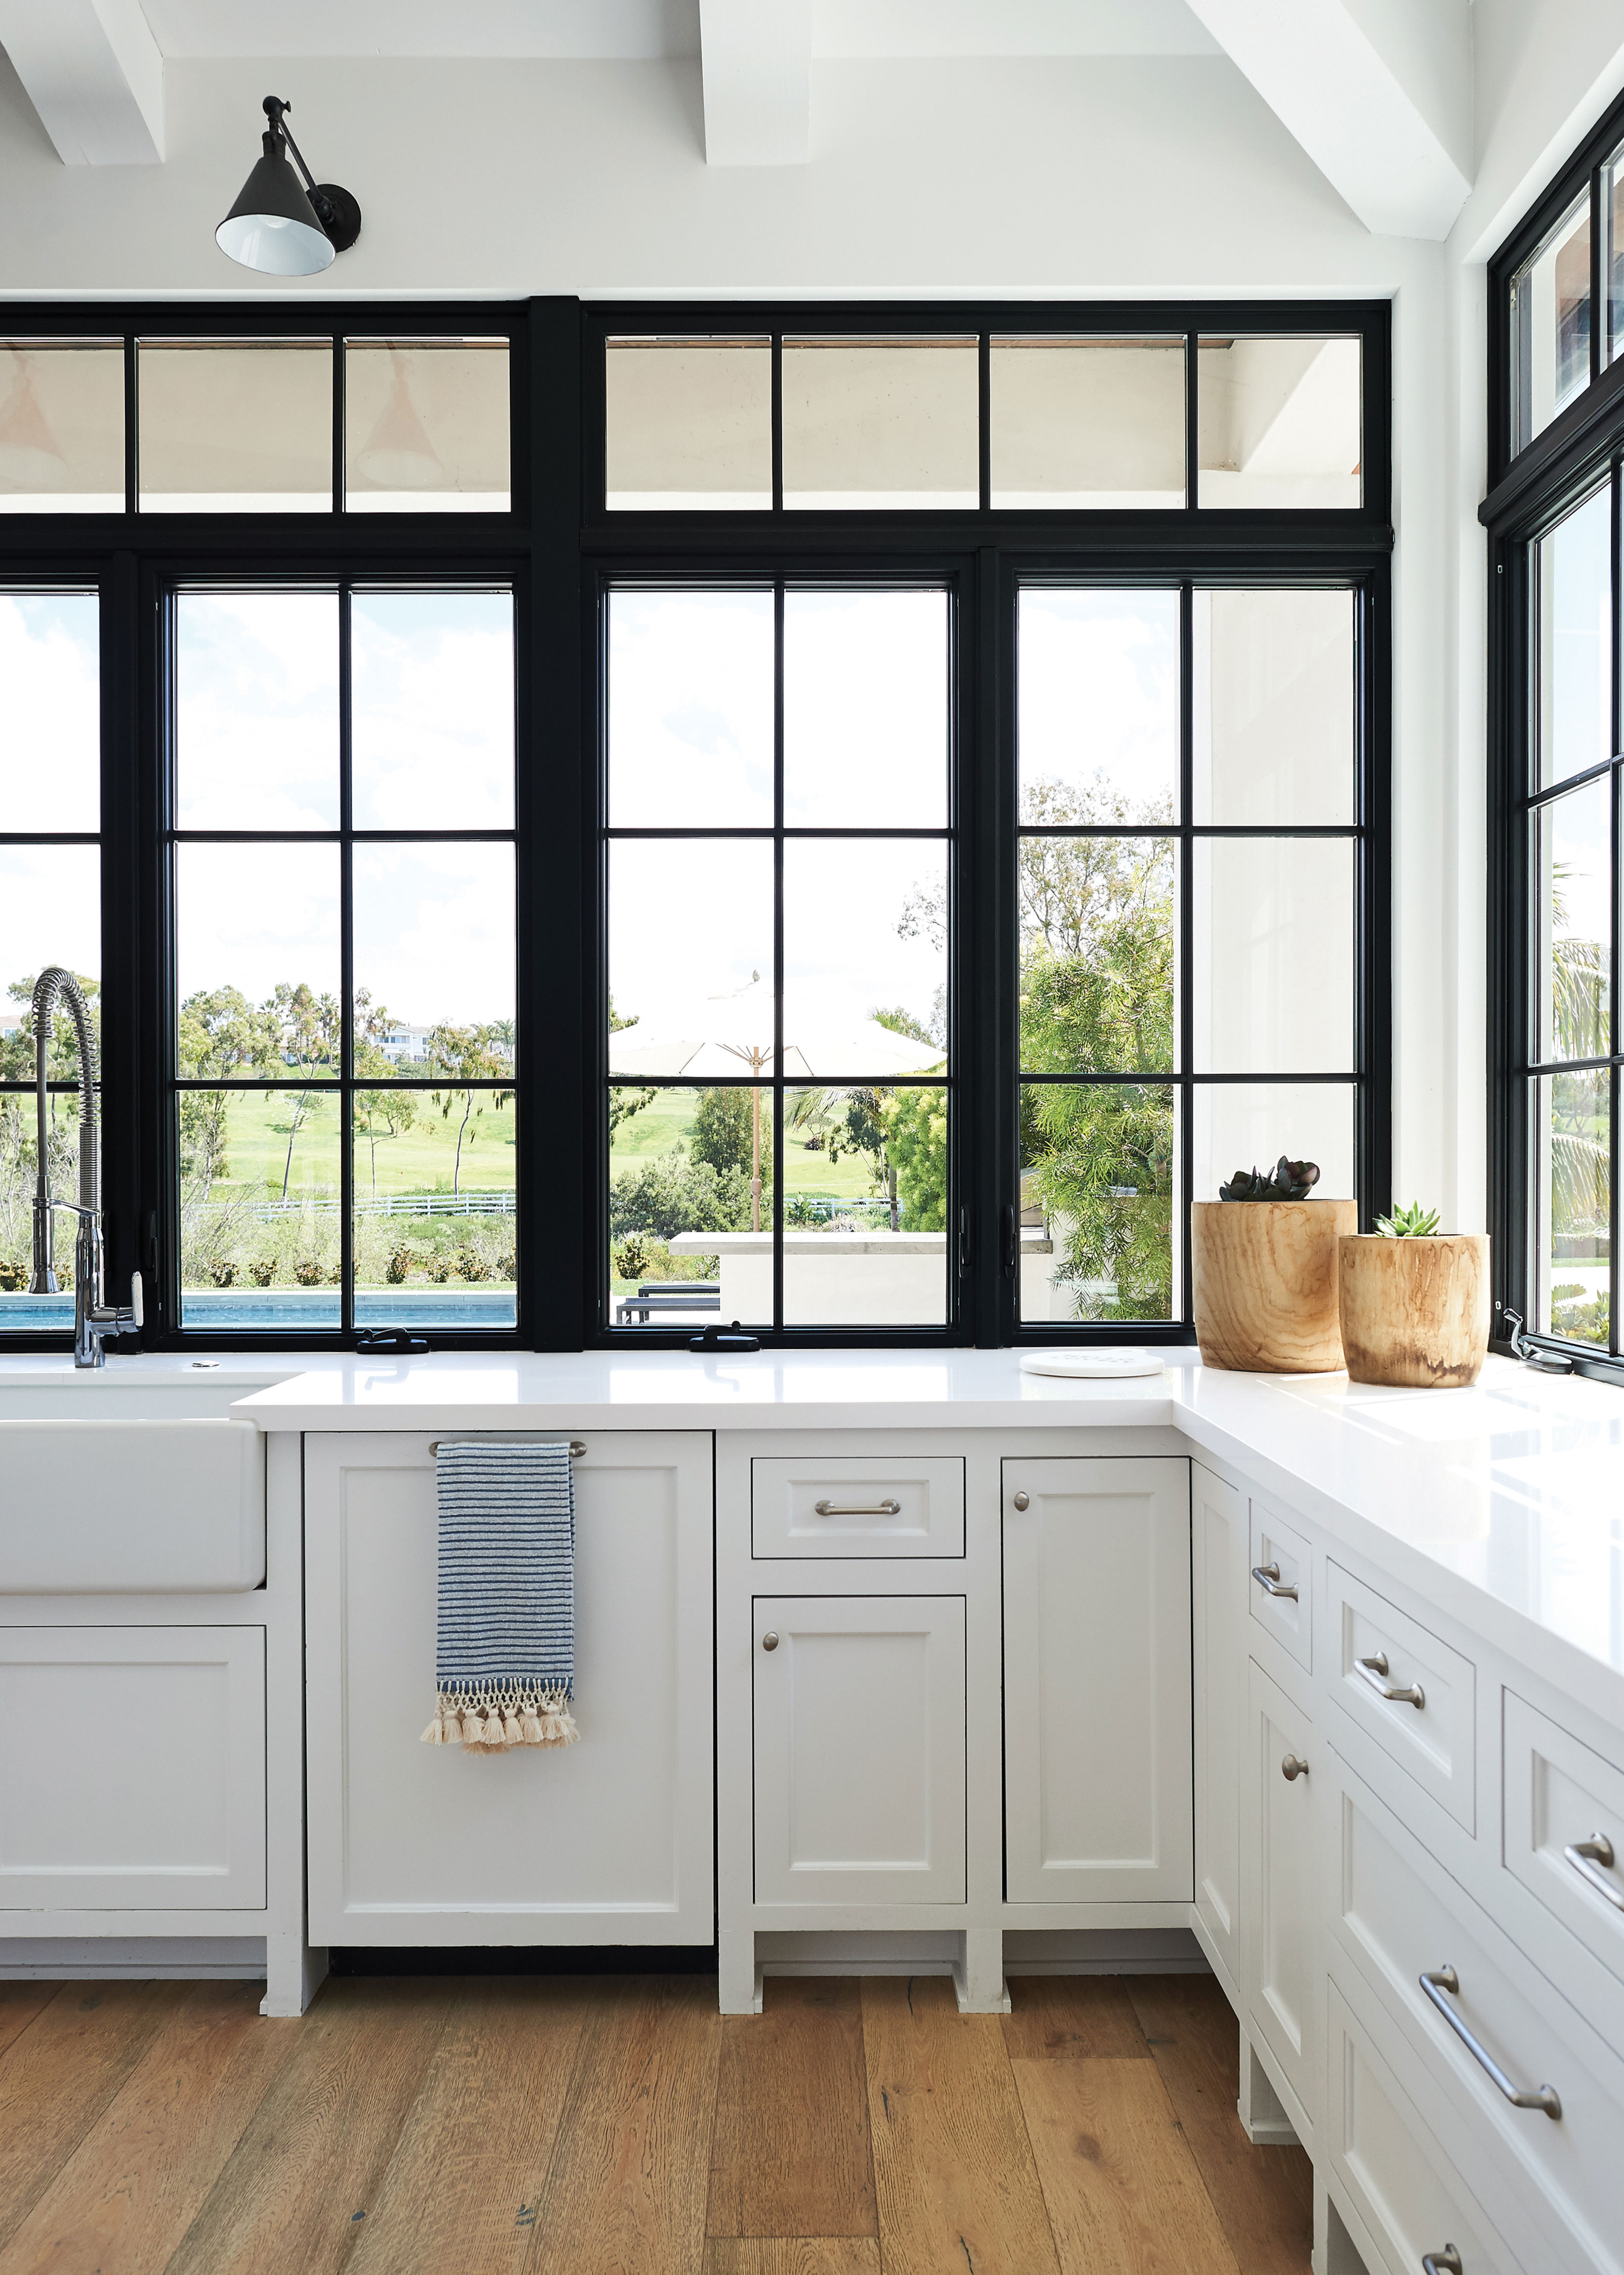 surprising kitchen lots windows   Kitchens of the Year 2019: DIY and Lots of Light - San ...